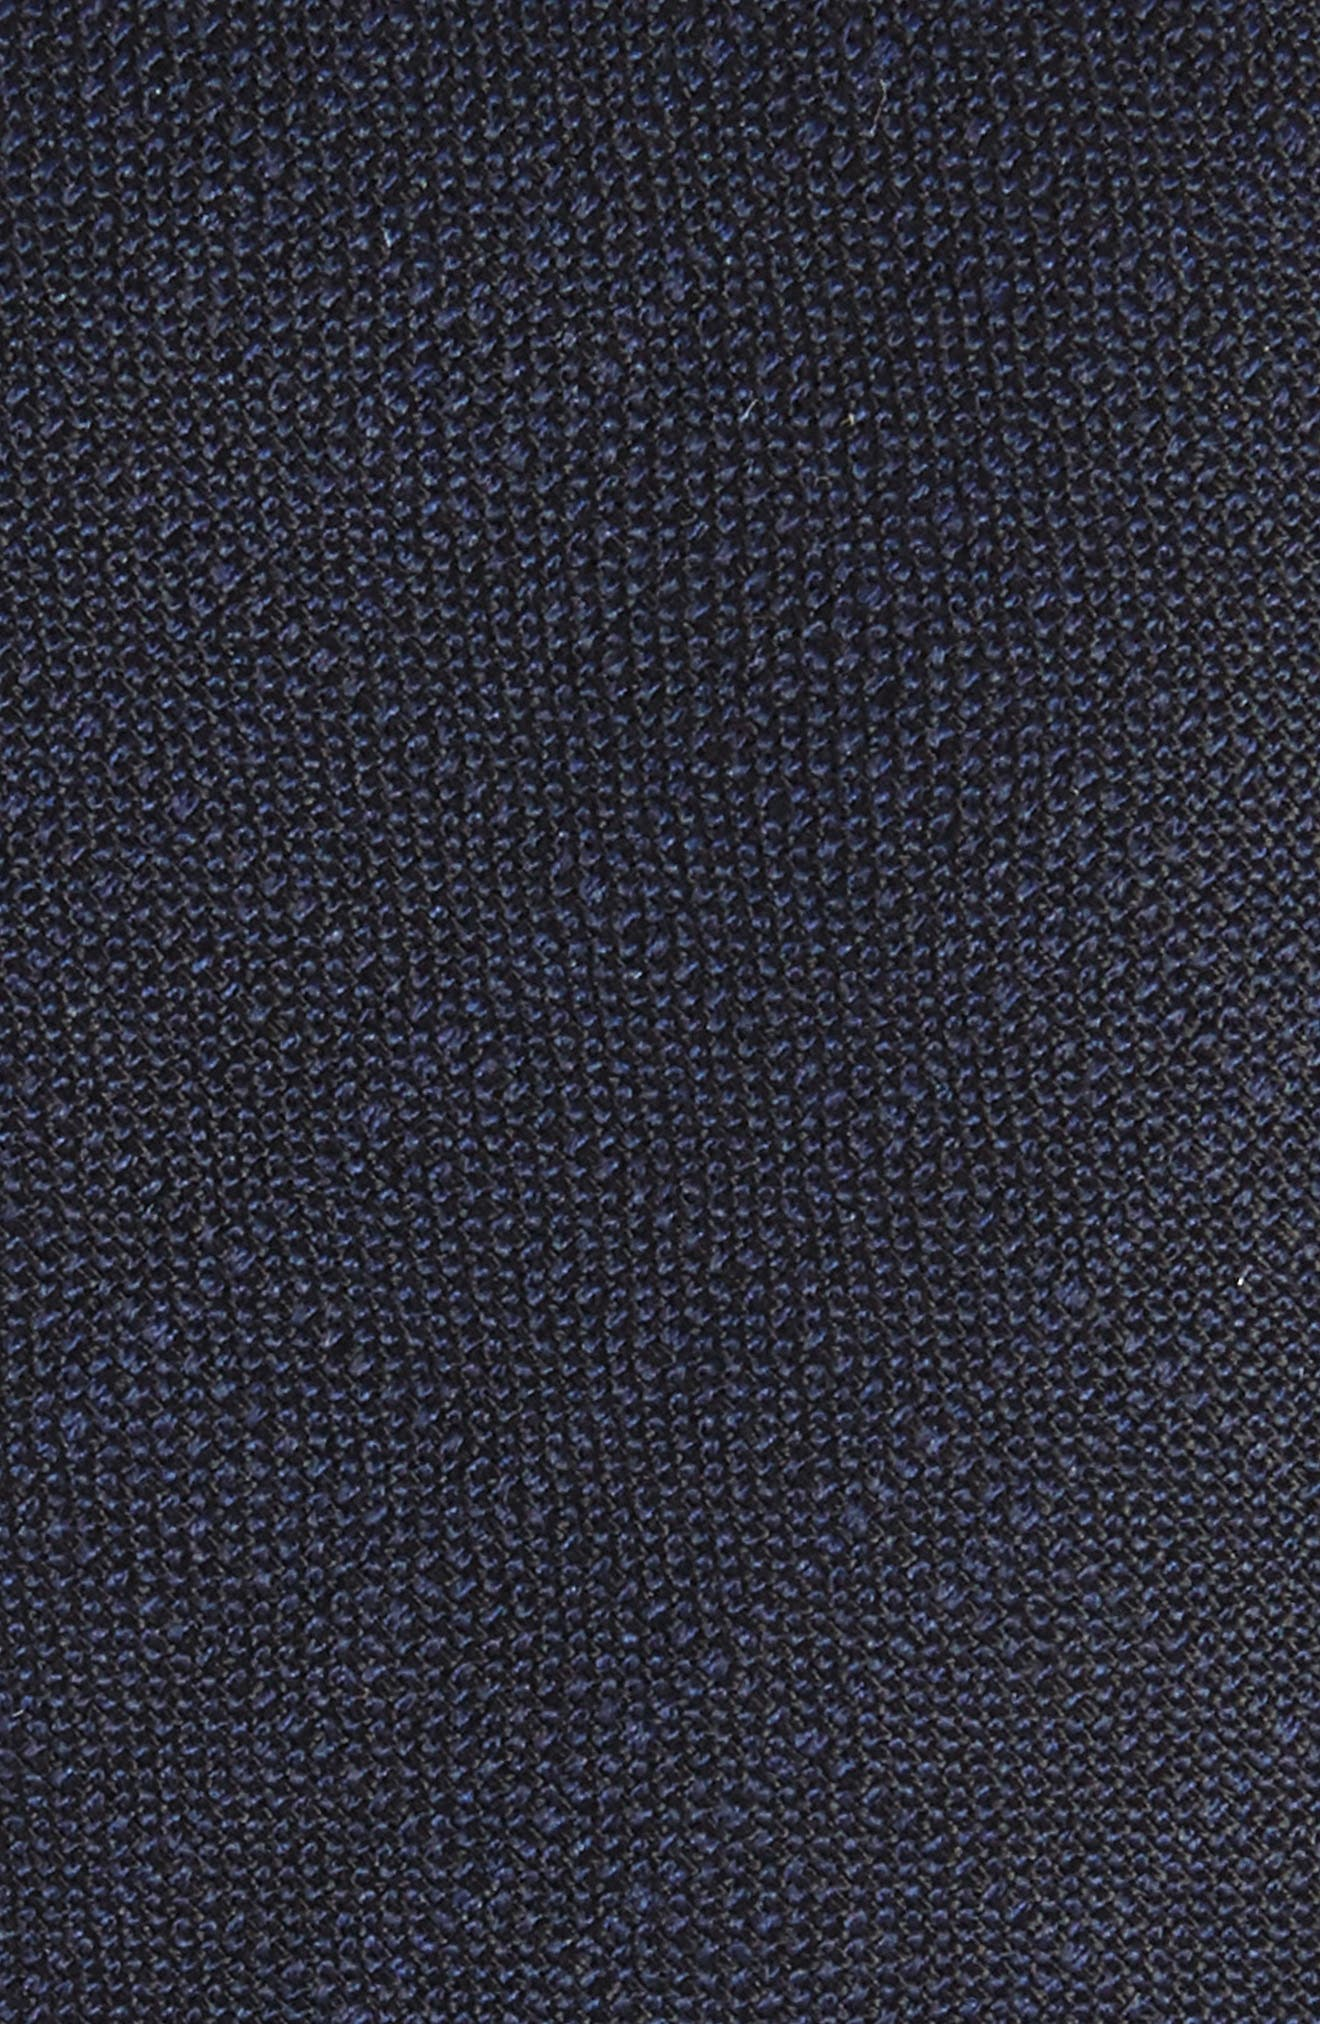 Jaspé Wool Skinny Tie,                             Alternate thumbnail 2, color,                             Navy